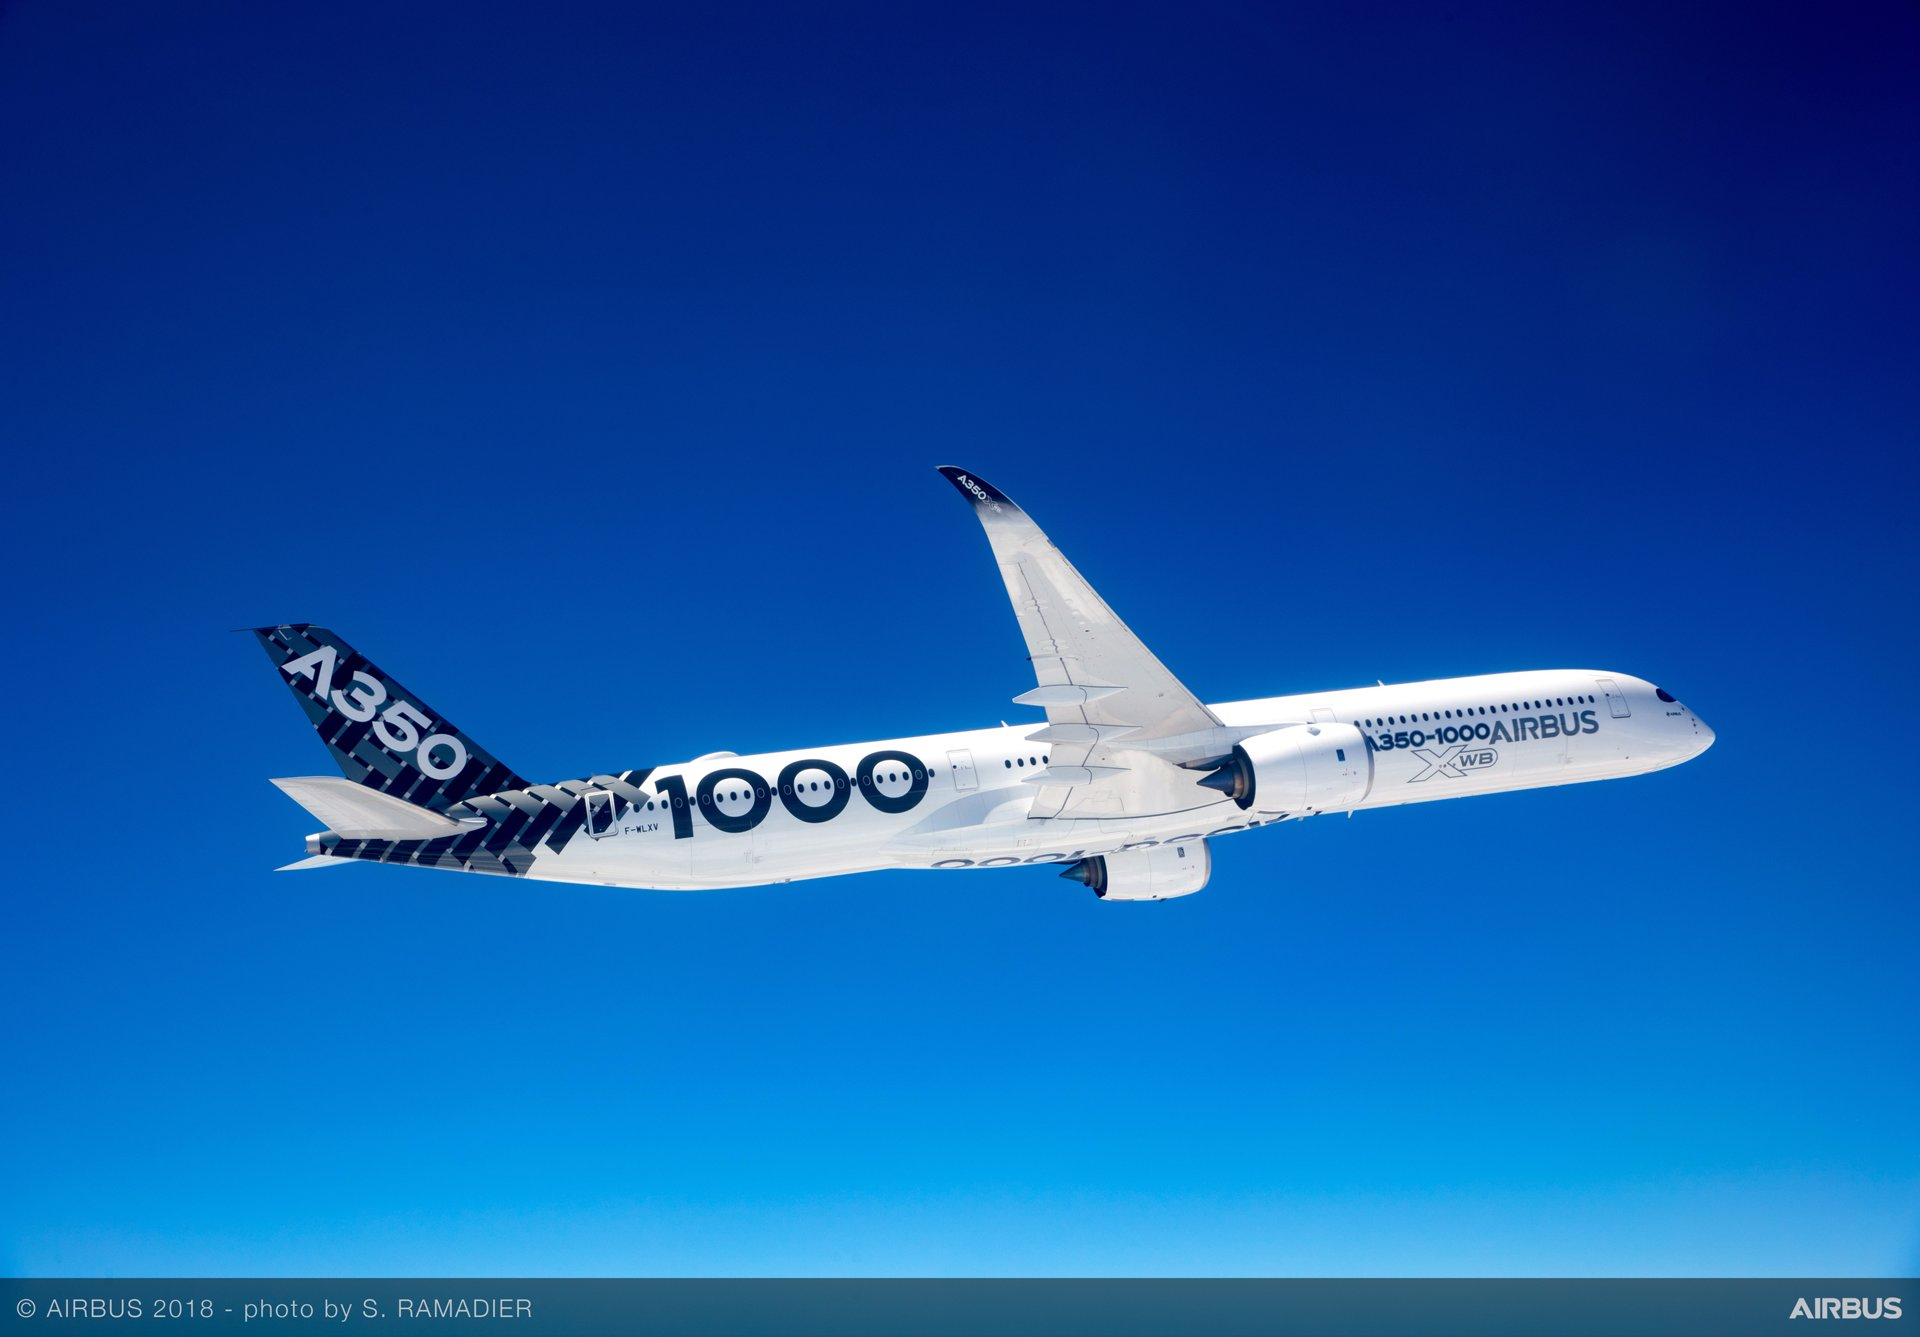 Powering the A350-1000 are Rolls-Royce Trent XWB-97 engines that allow this largest member of Airbus' A350 XWB Family to attain high levels of efficiency